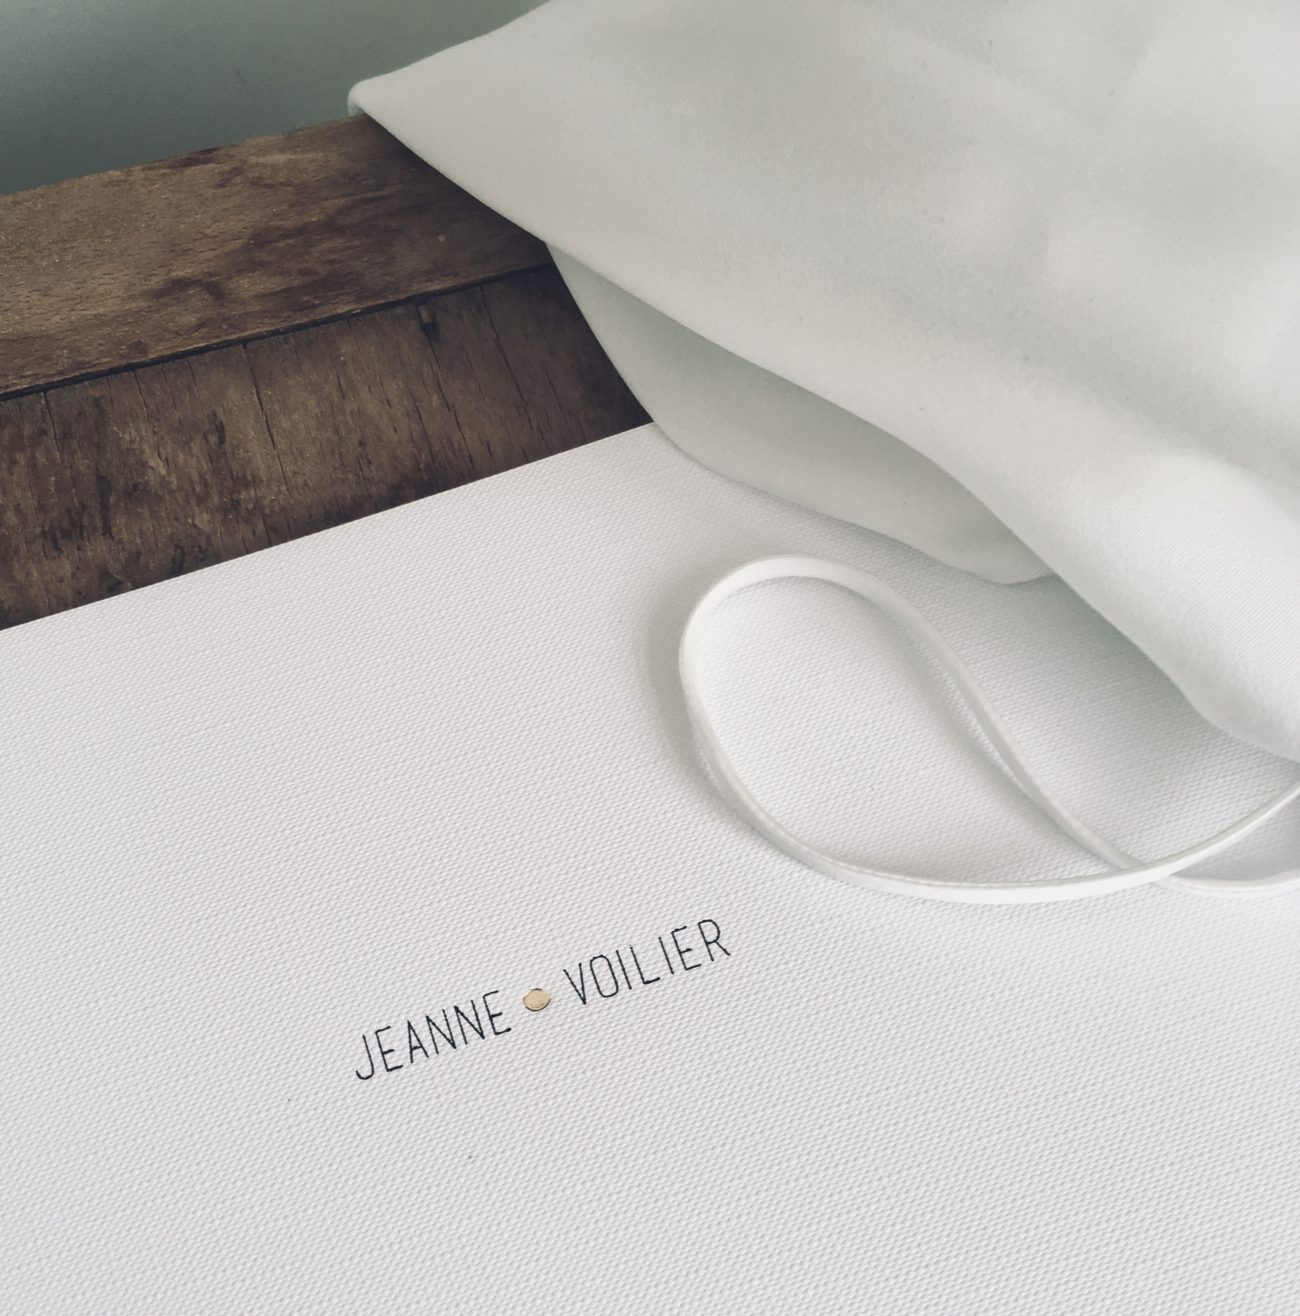 JEANNE VOILIER collections exclusives de tops et robes en soie